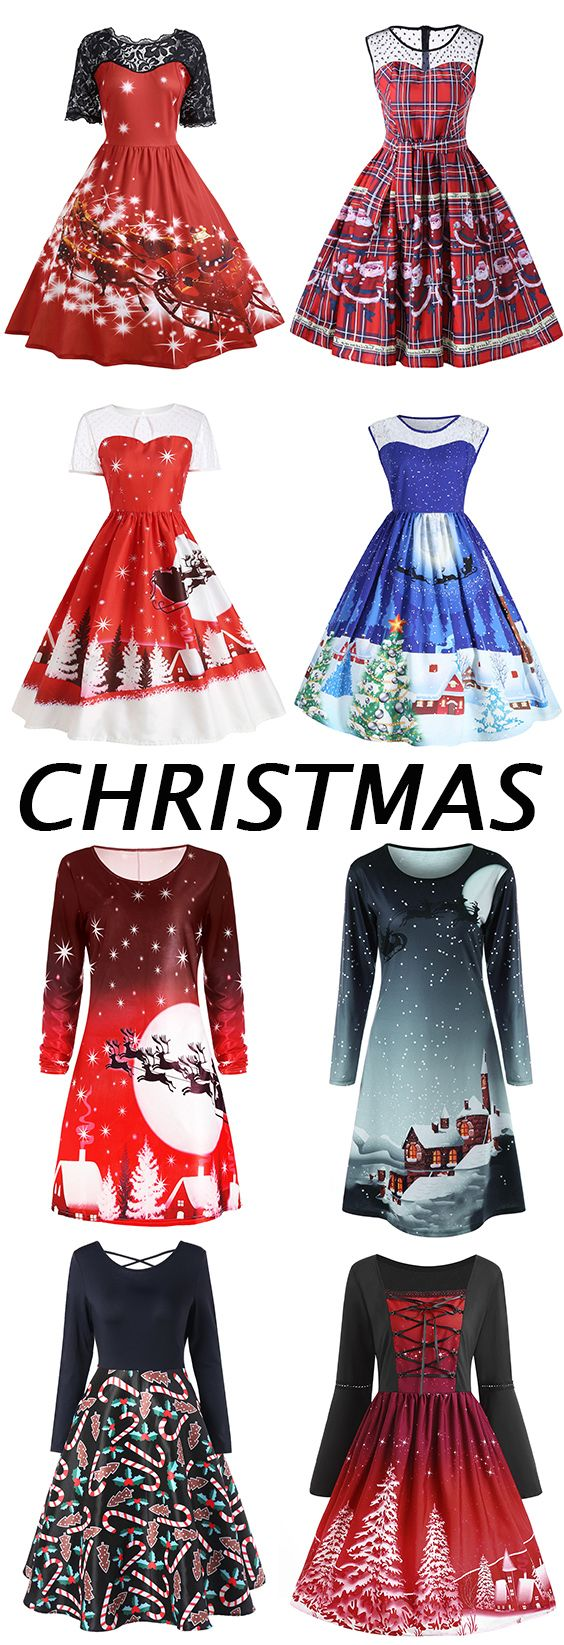 50% off Christmas dresses.Free Shipping Worldwide - Not sure if the discount is valid but look at those cute dresses!!